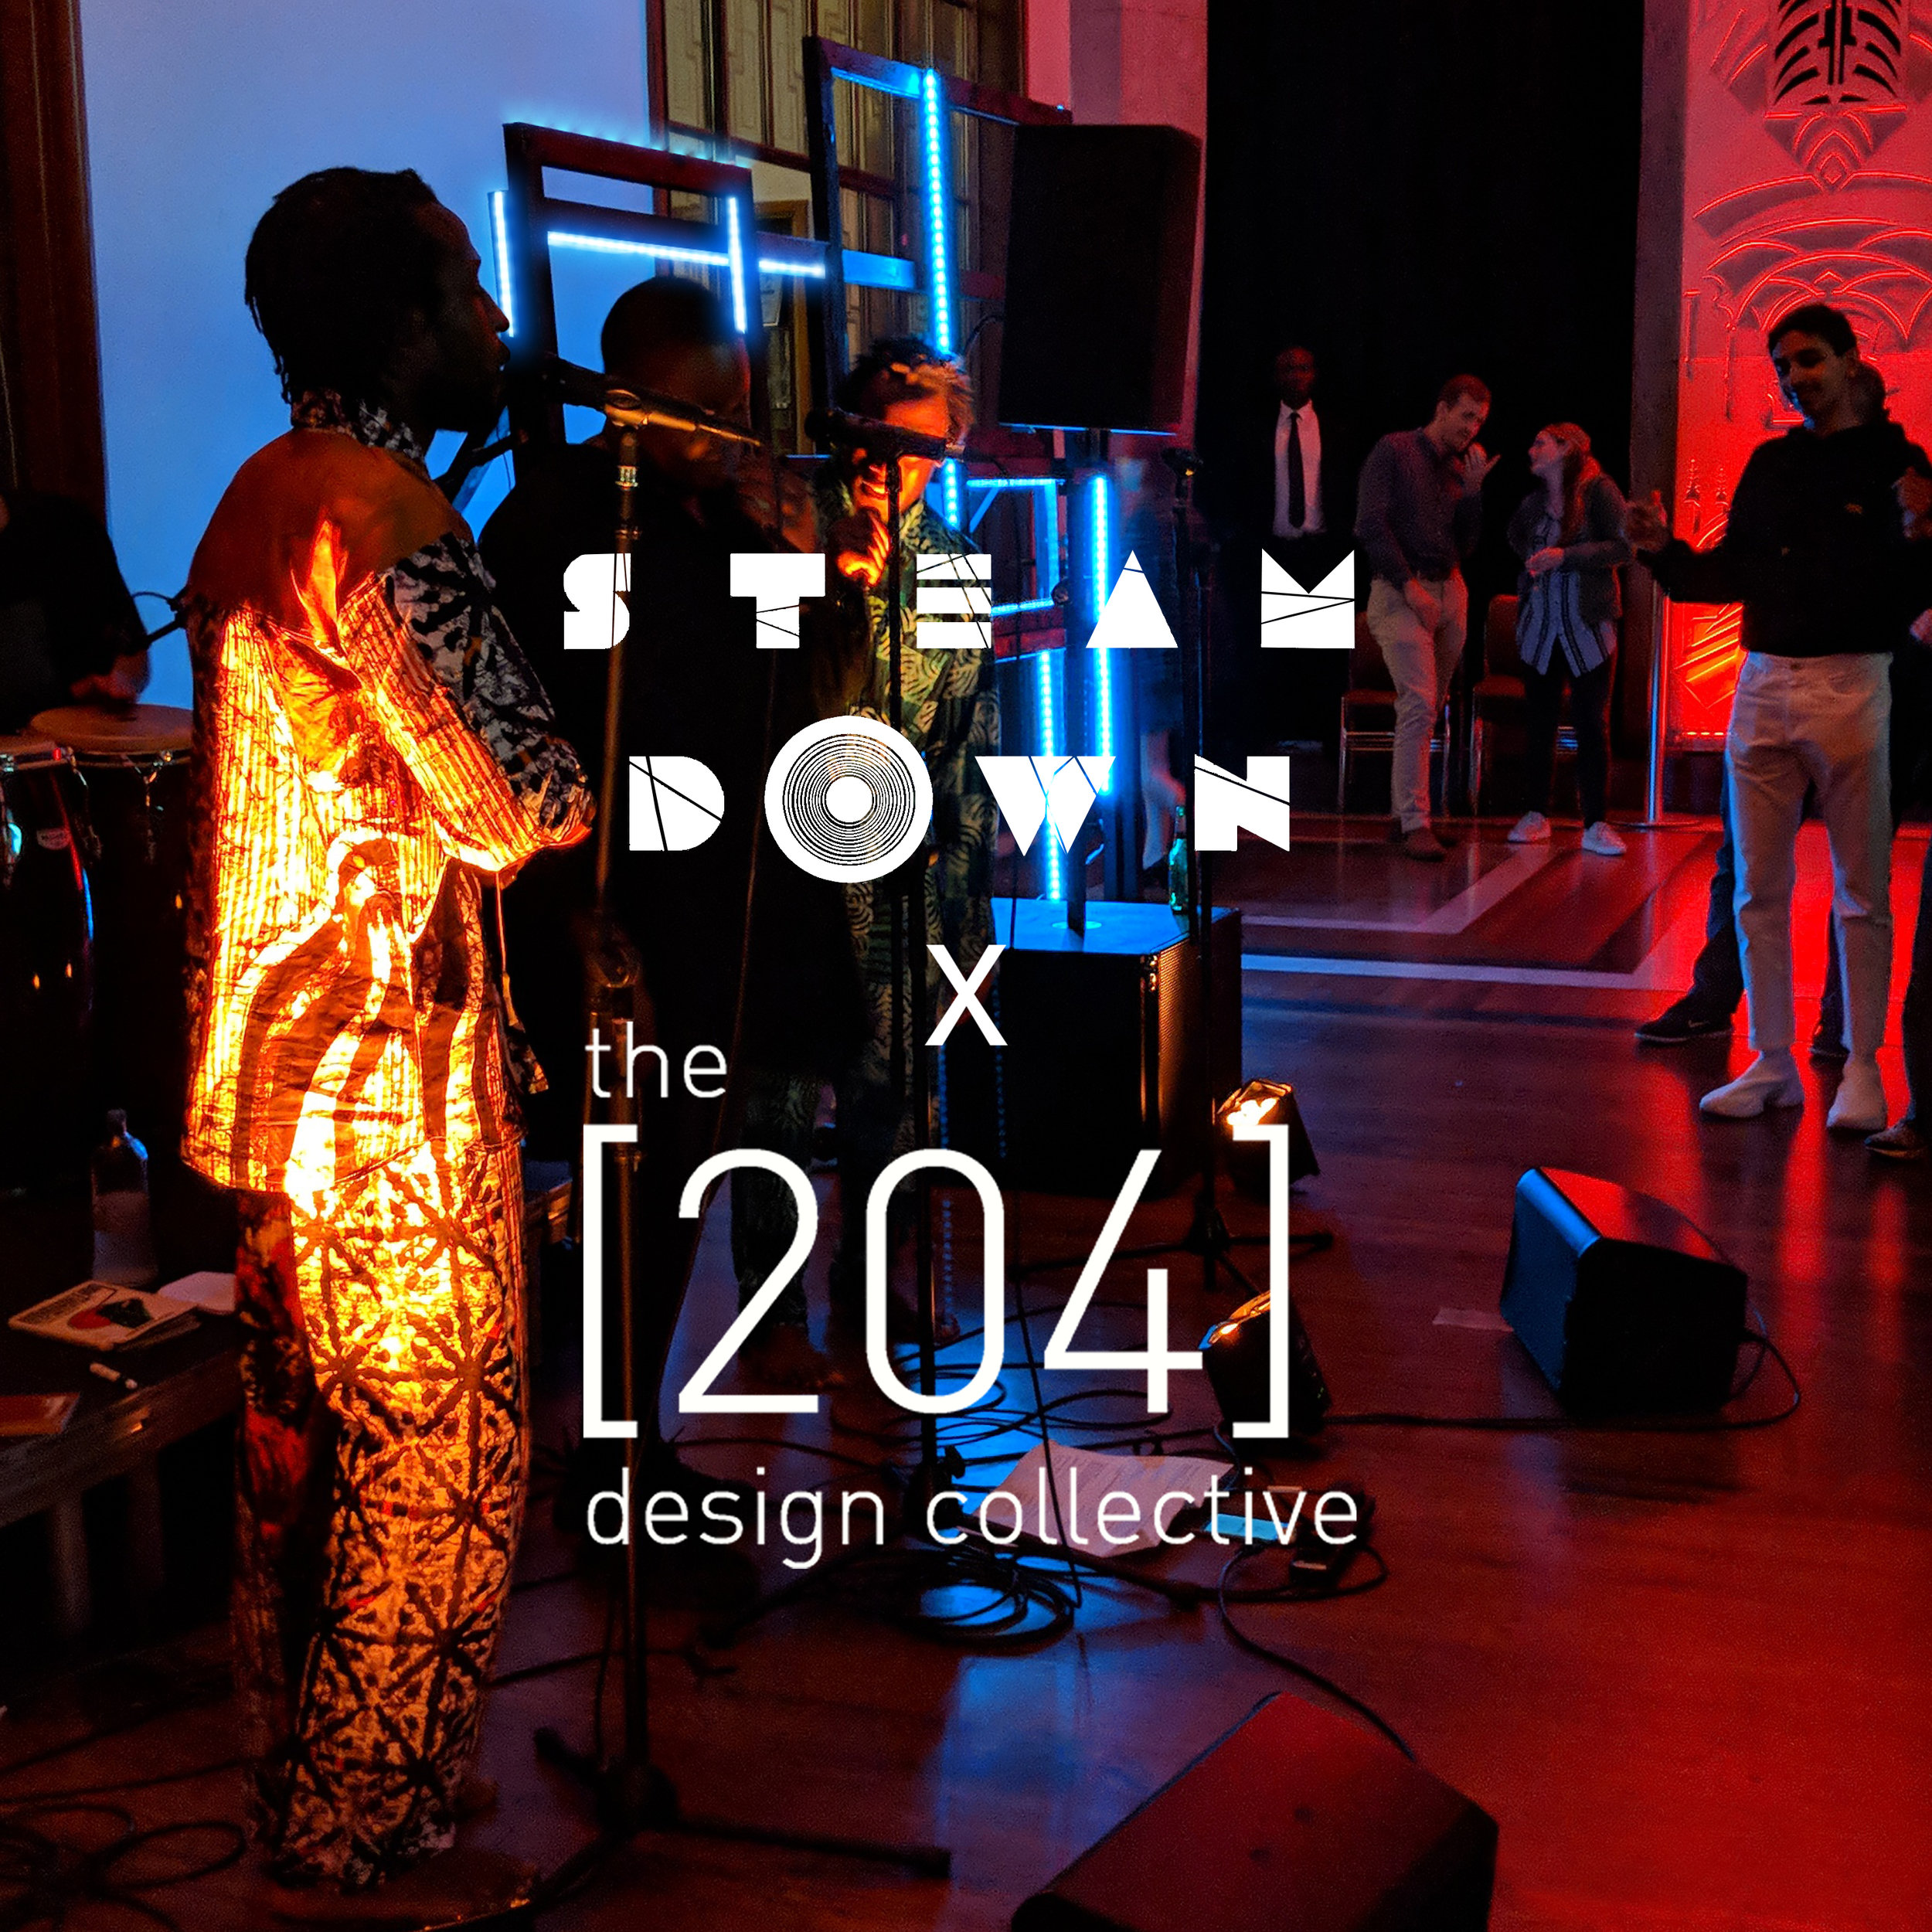 The Stephen Lawrence Memorial Lecture | Performance Design   [Steam Down x The [204] Design Collective]  09/20/18